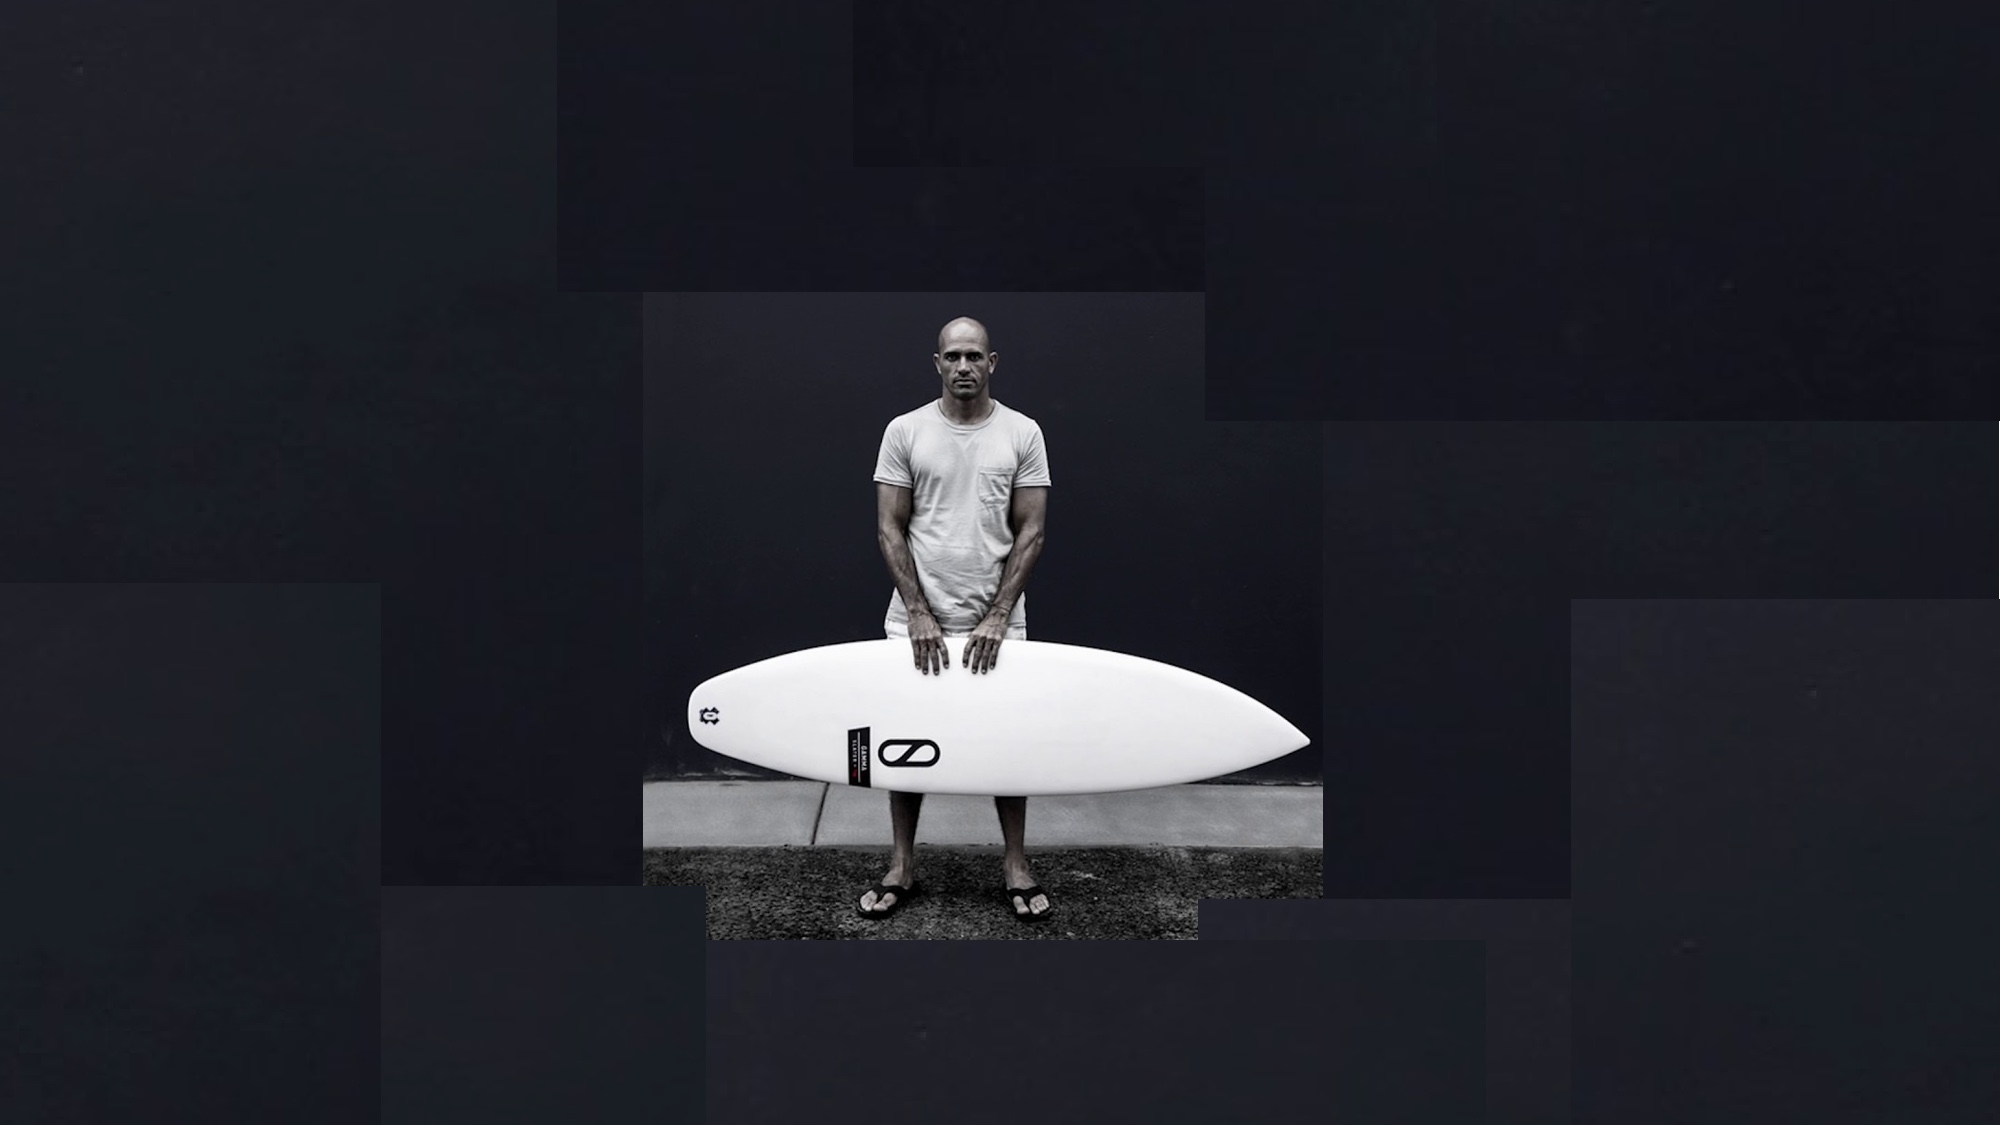 kelly slater with surfboard